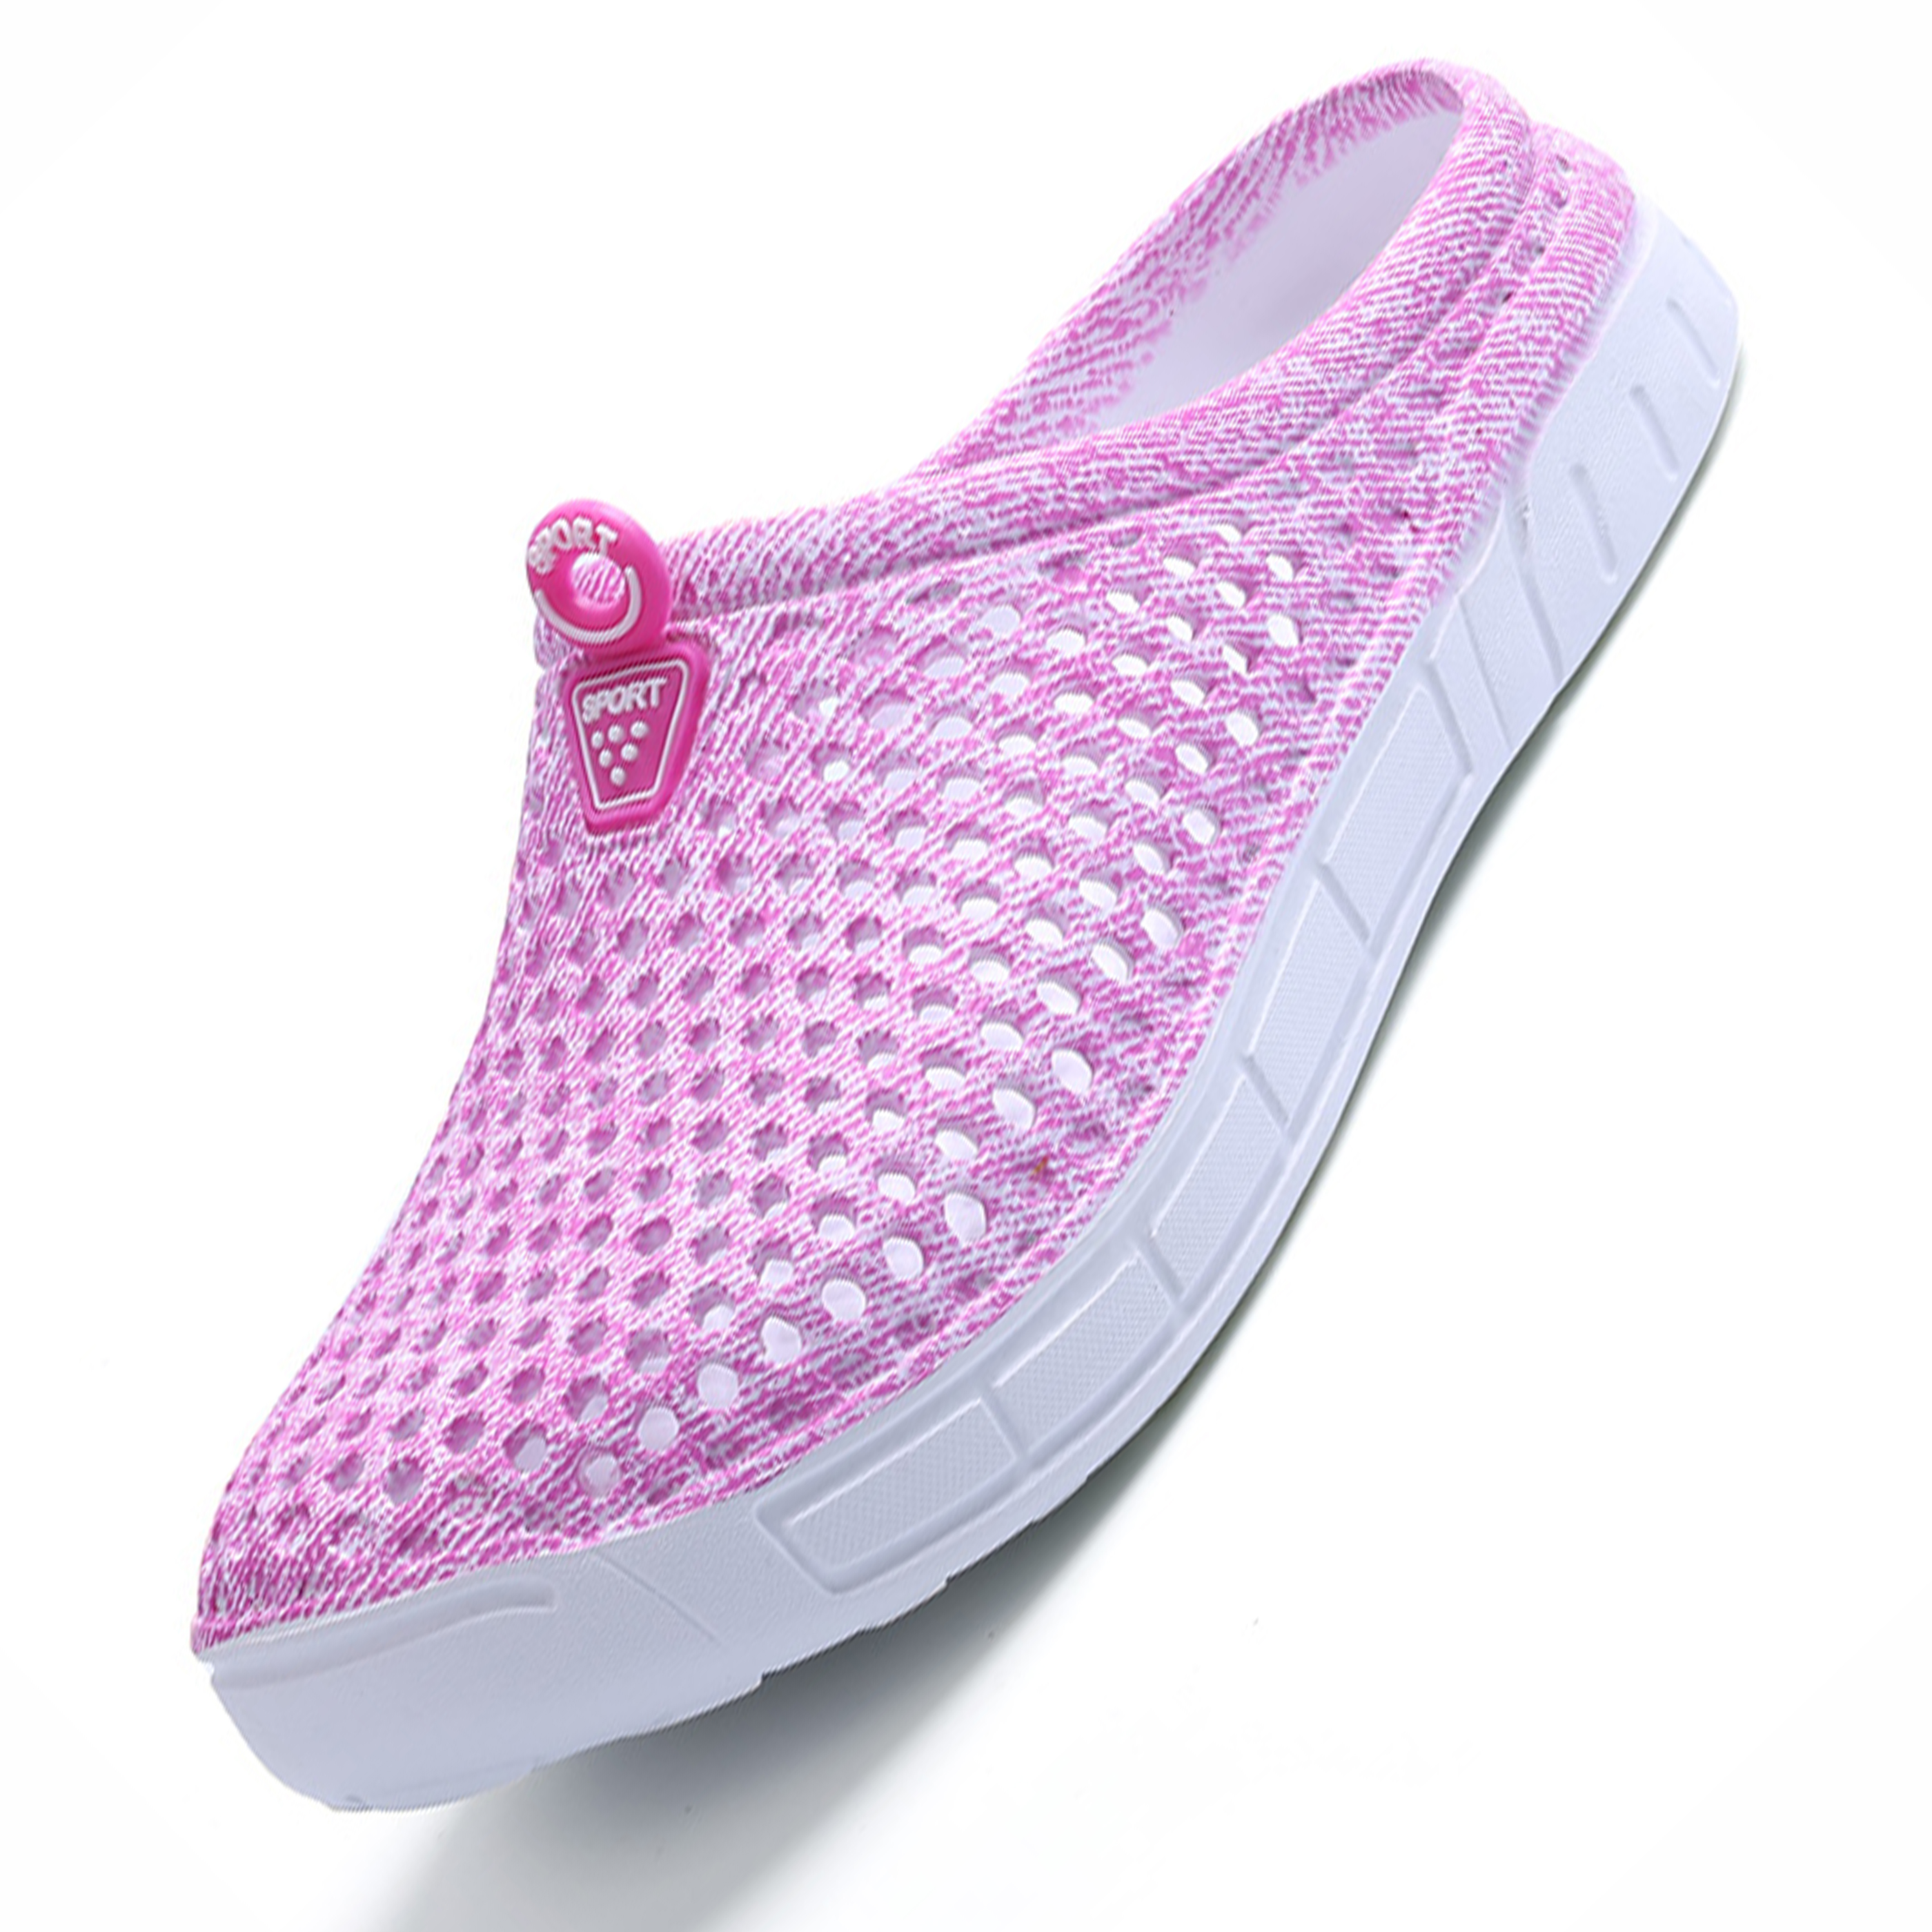 Female Summer New Women Beach Slippers Platform Breathable Mesh Shoes For Flip Flop Women Sandals Plus Size 36-41 Zapatillas sandals 2016 new famous brand buckle womens flip flop sandals summer beach sandals af327